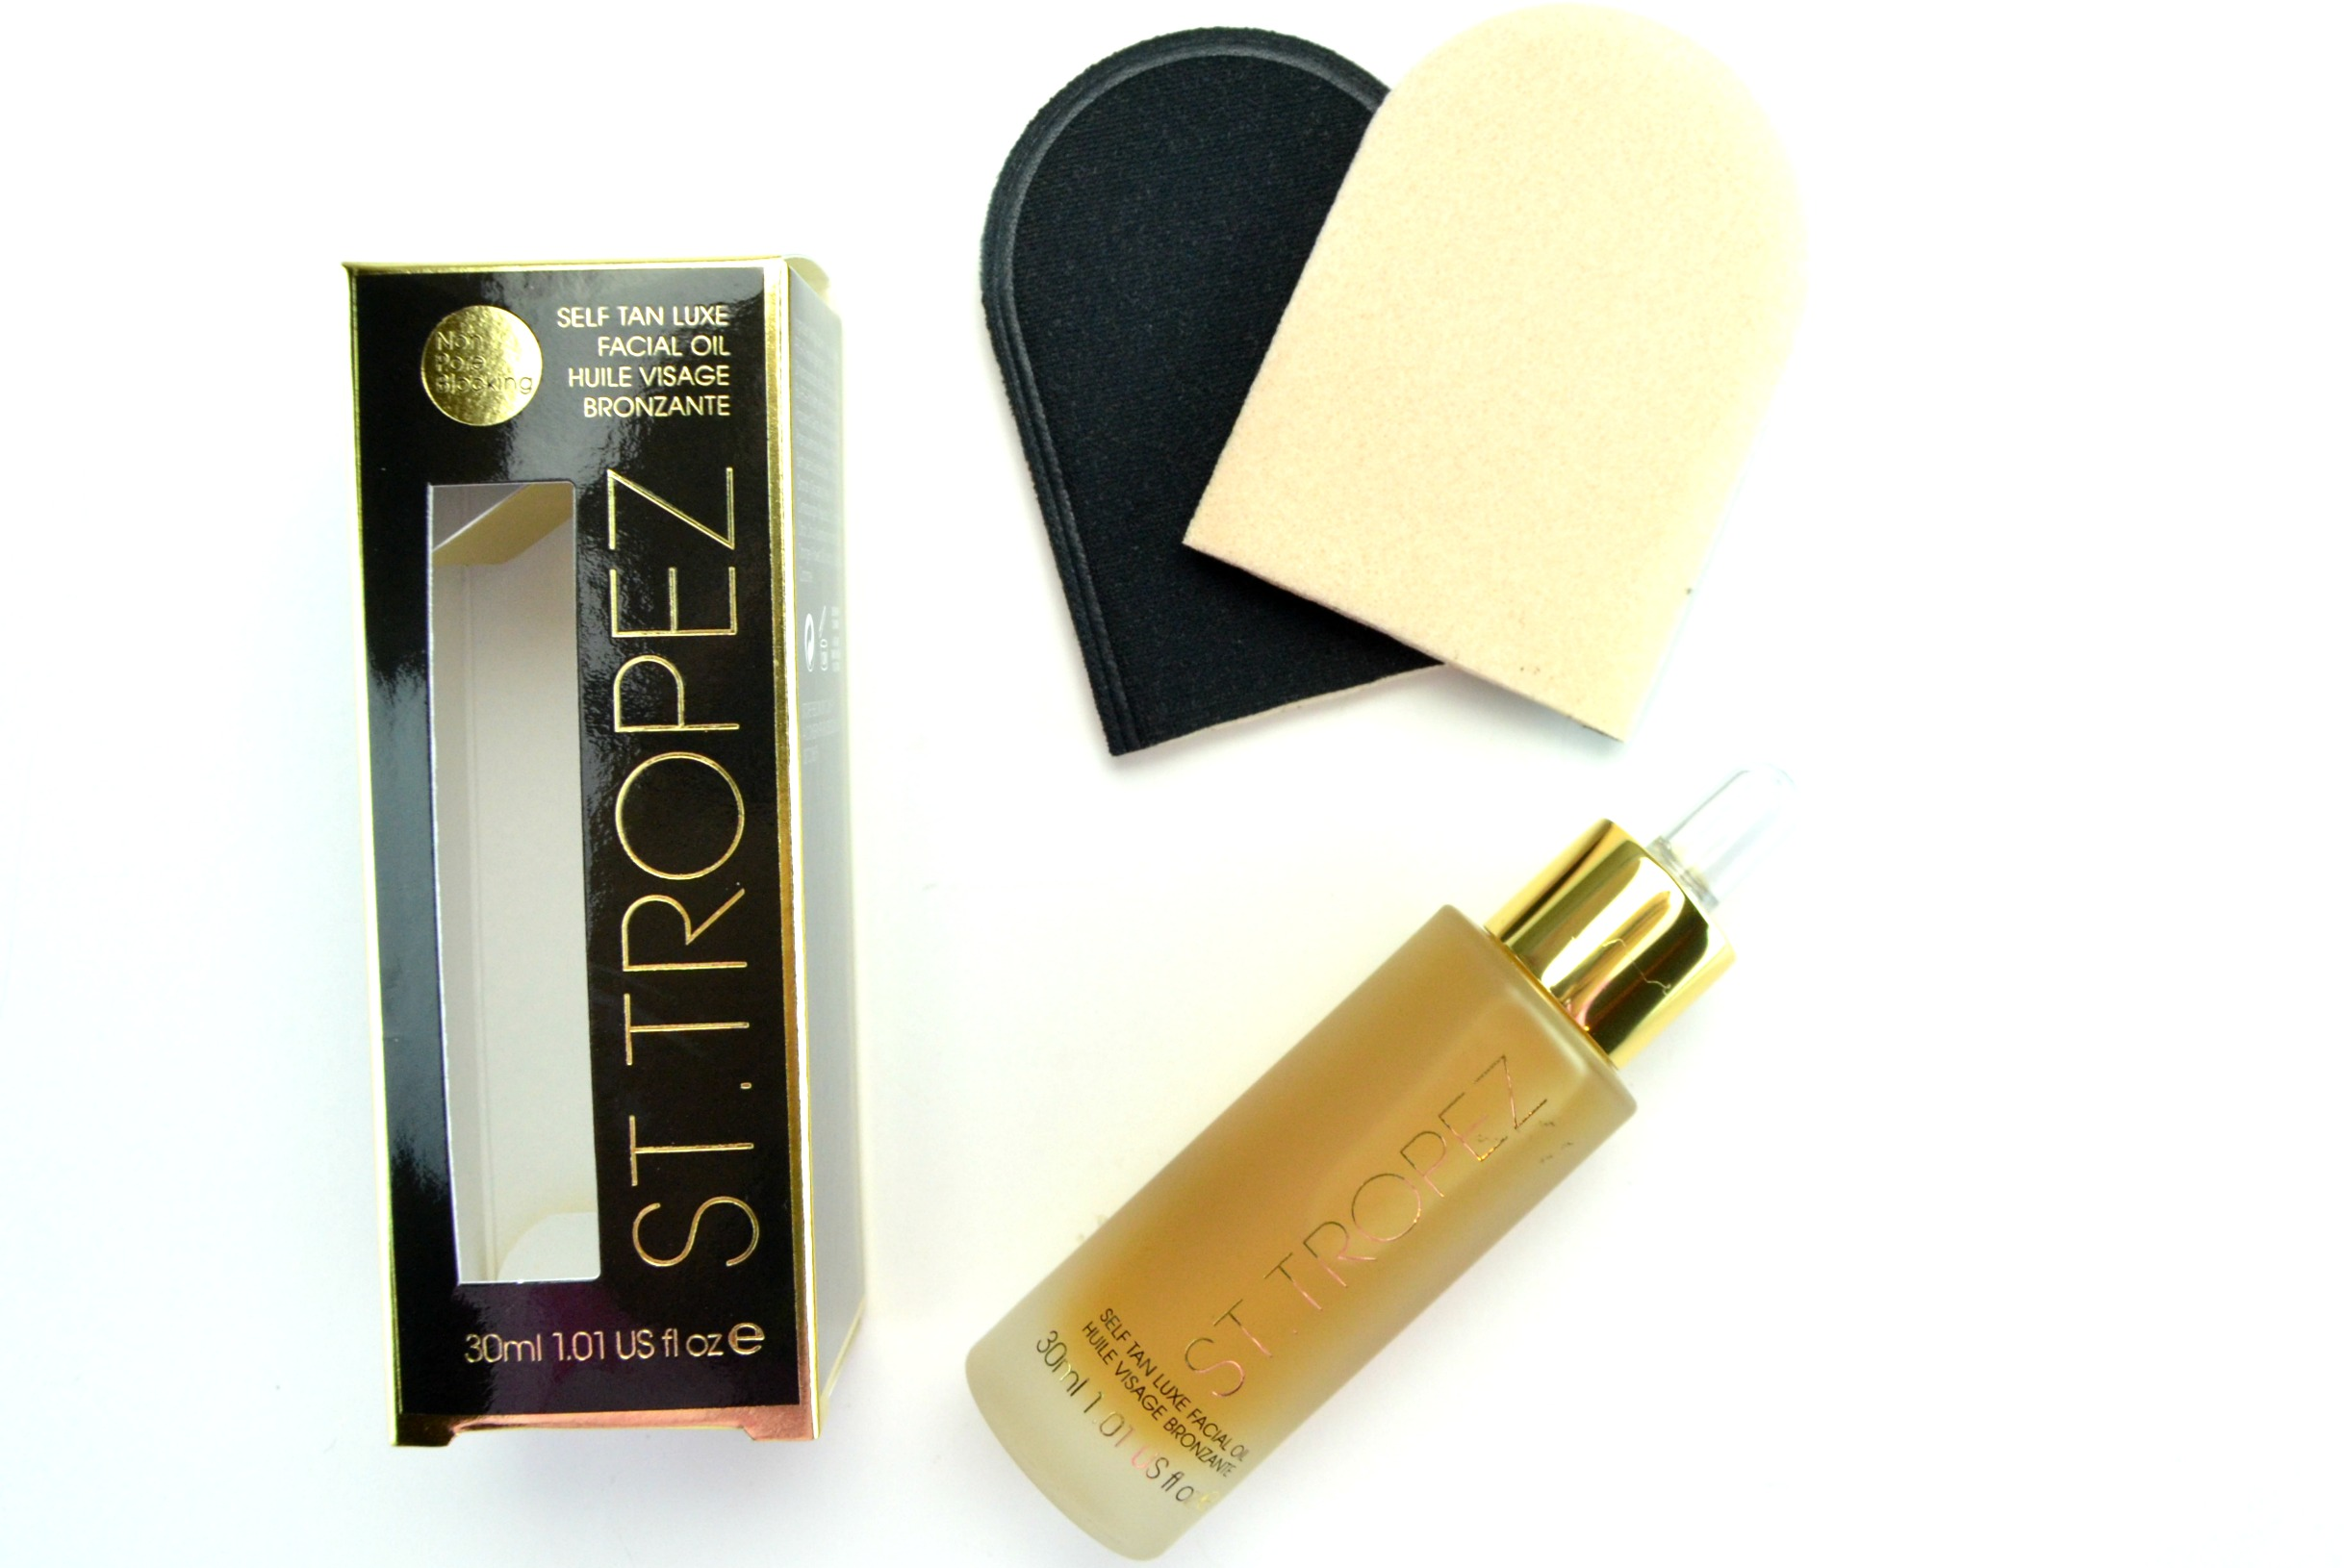 St. Tropez Self Tan